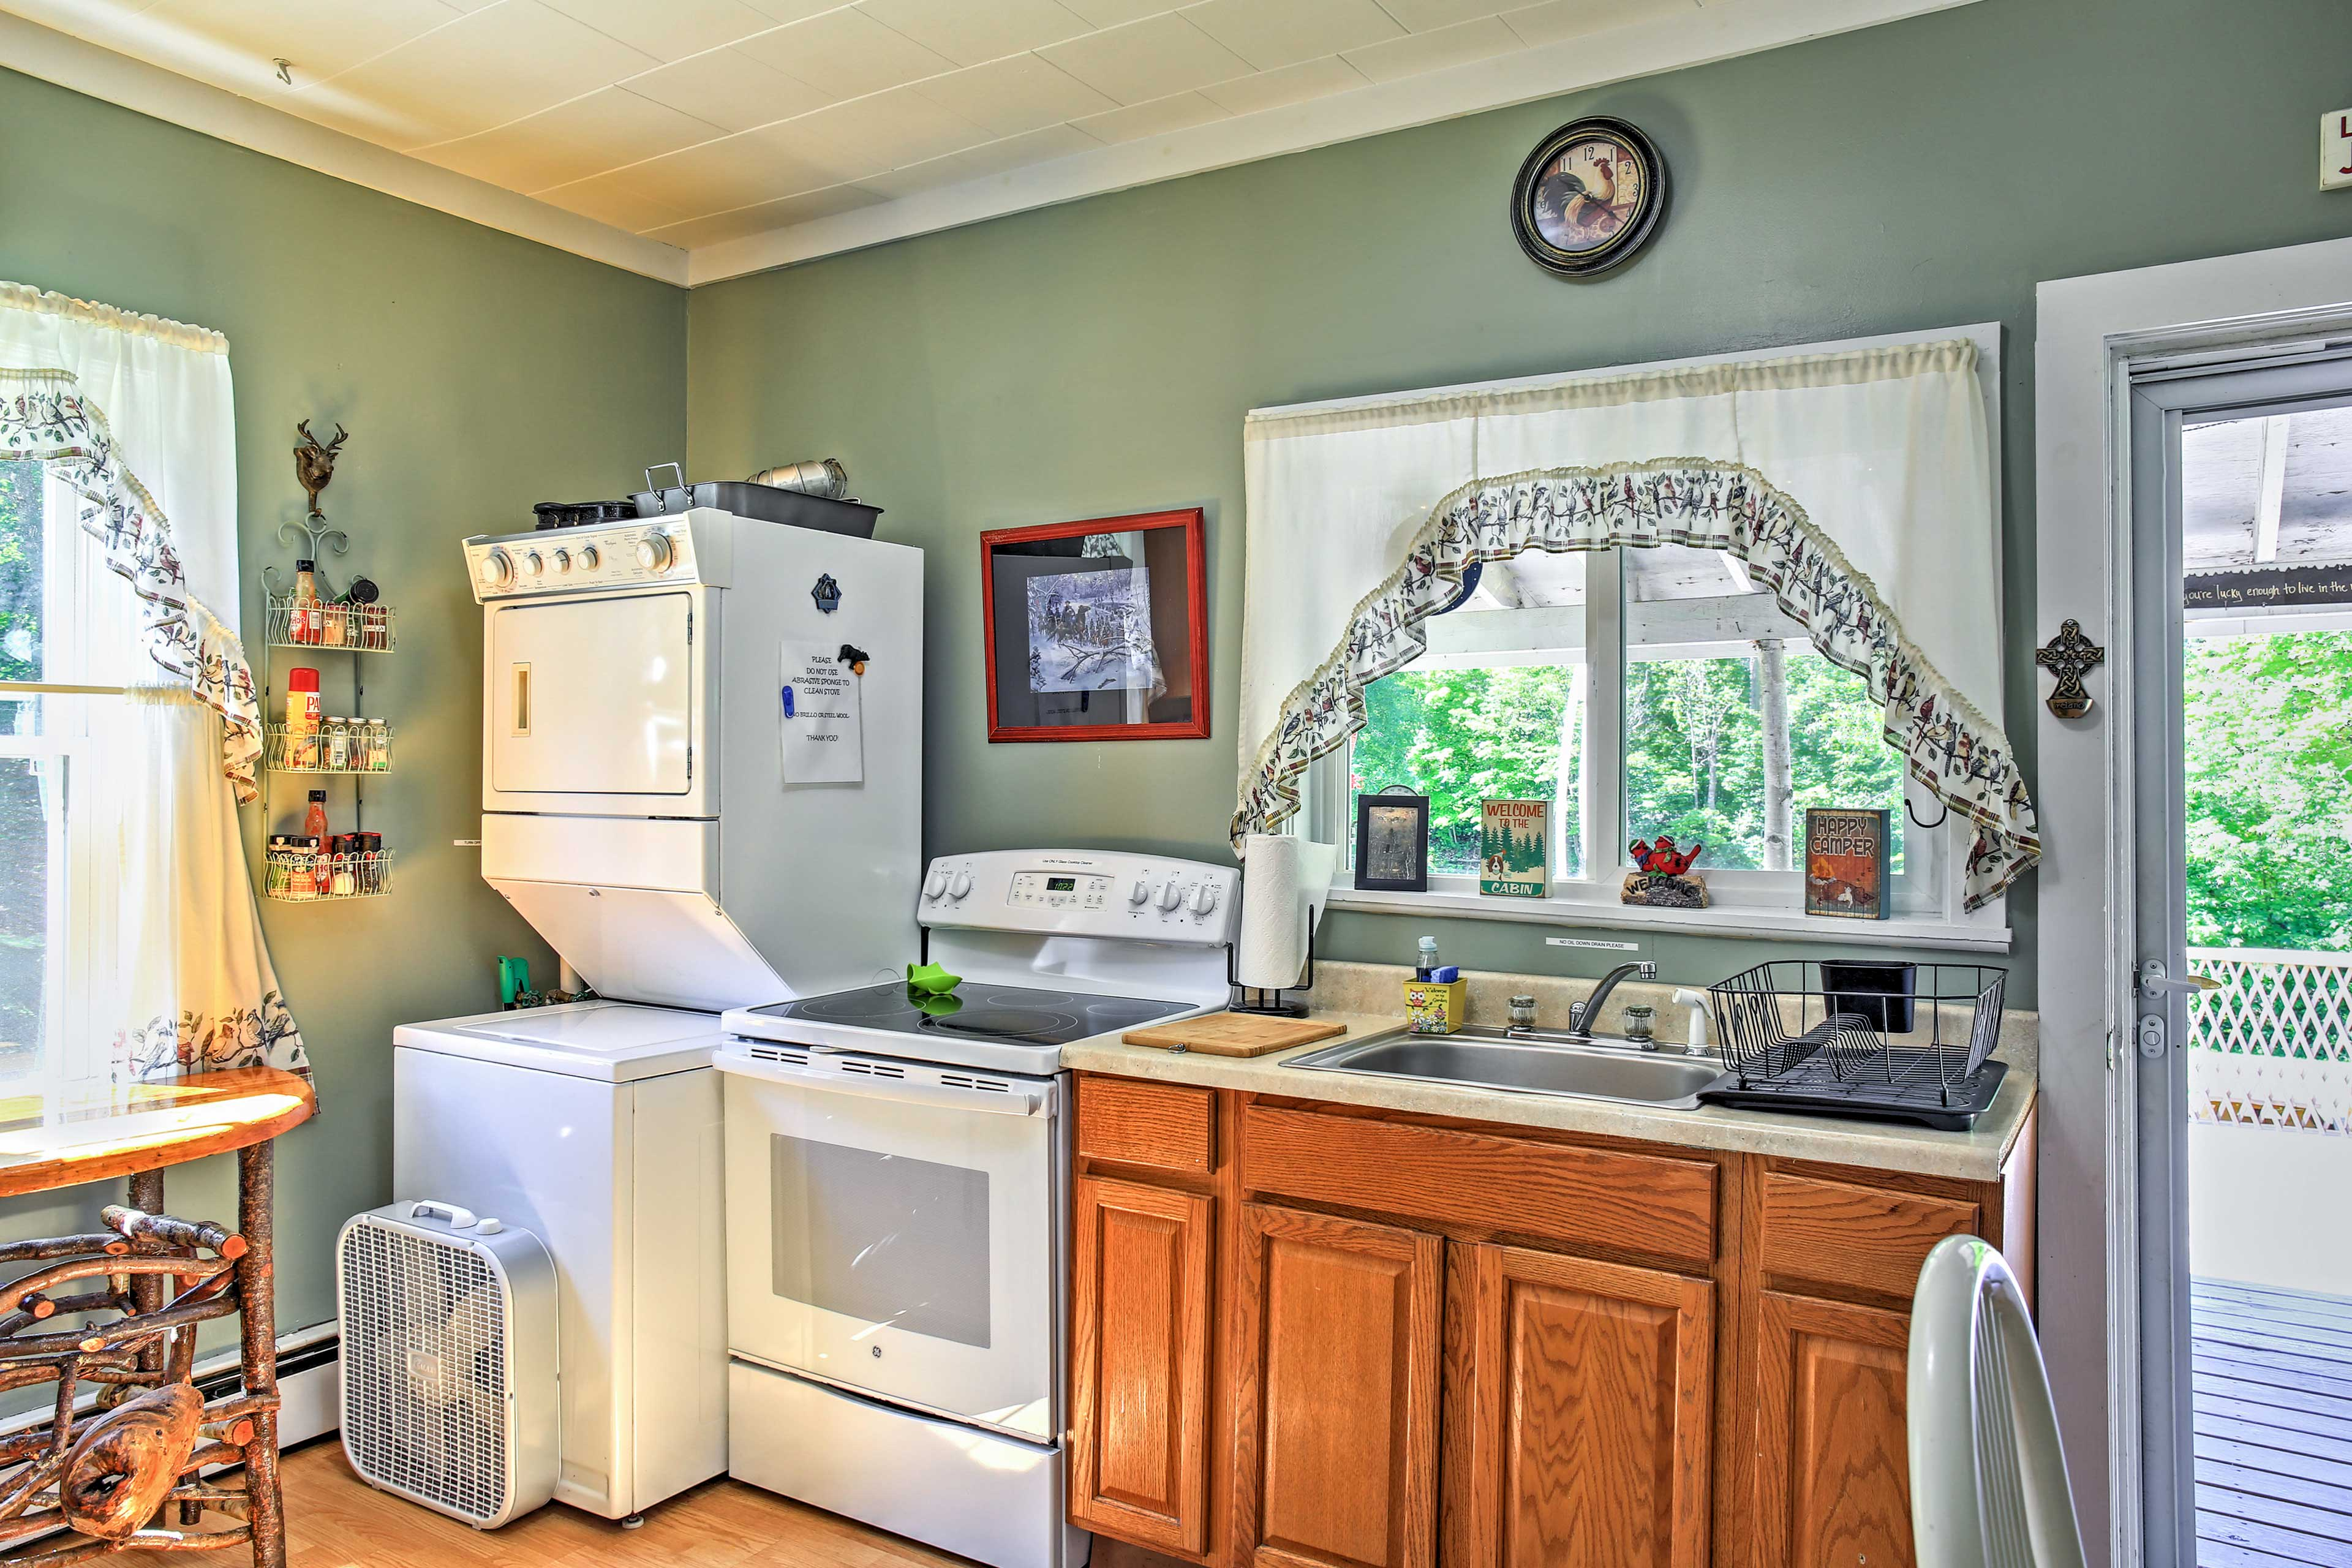 This kitchen has all of the culinary essentials of home!